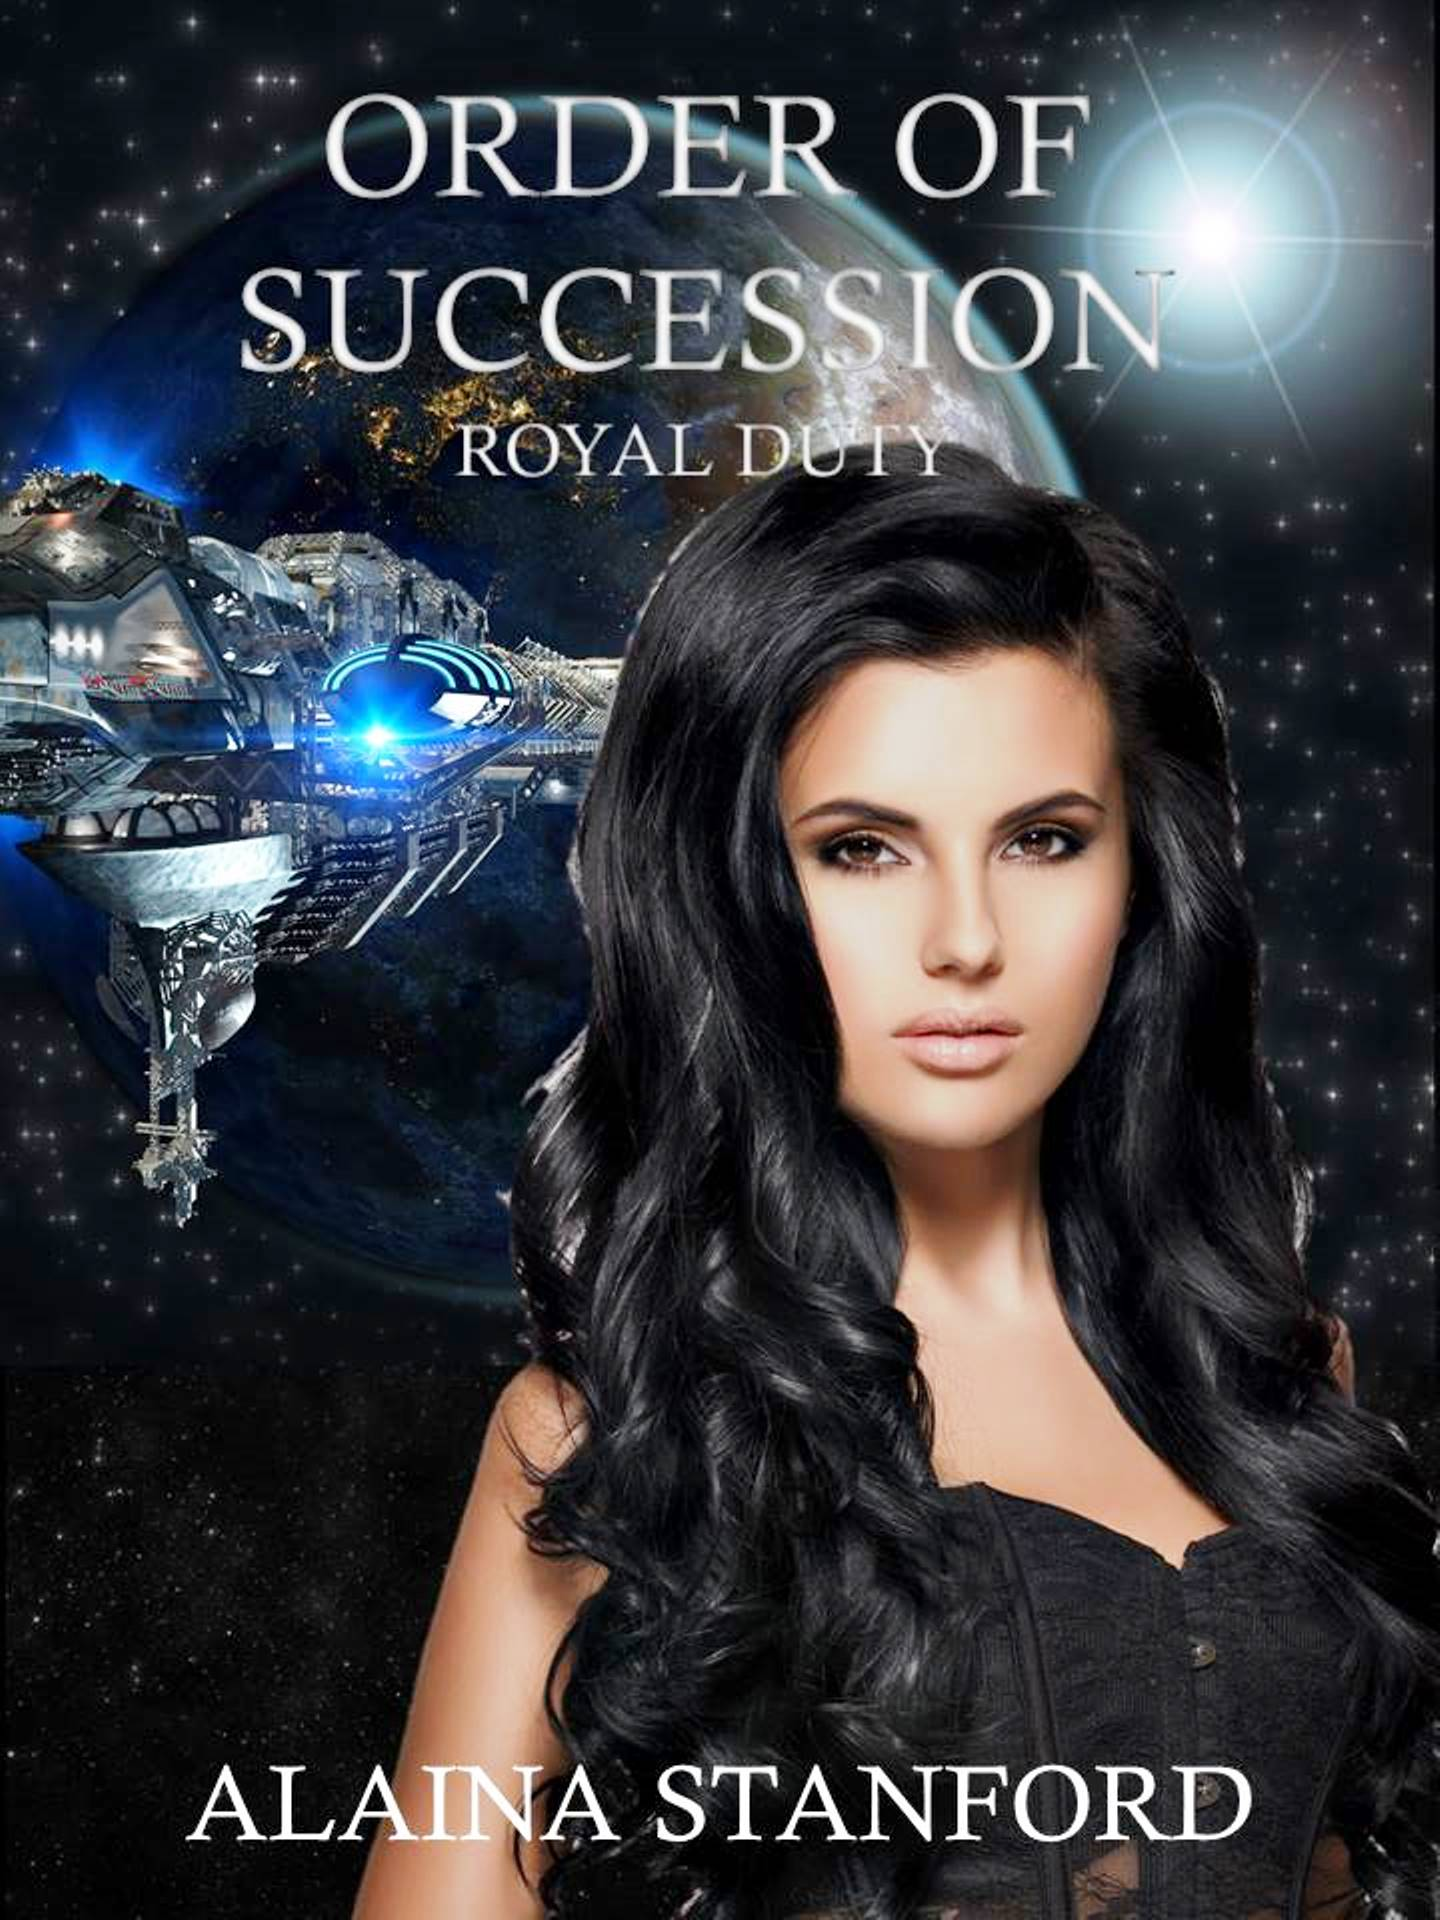 Order of Succession, Book 1- Science Fiction Romance Adventure   Kaelyn is the princess of Chelyana is a tropical paradise. Eighty-five percent of its surface is covered in water spotted with islands offering sandy beaches, lush foliage, and luxury resorts.  She knows nothing about politics or international law. She knows nothing about an arranged marriage. She's about to find out.